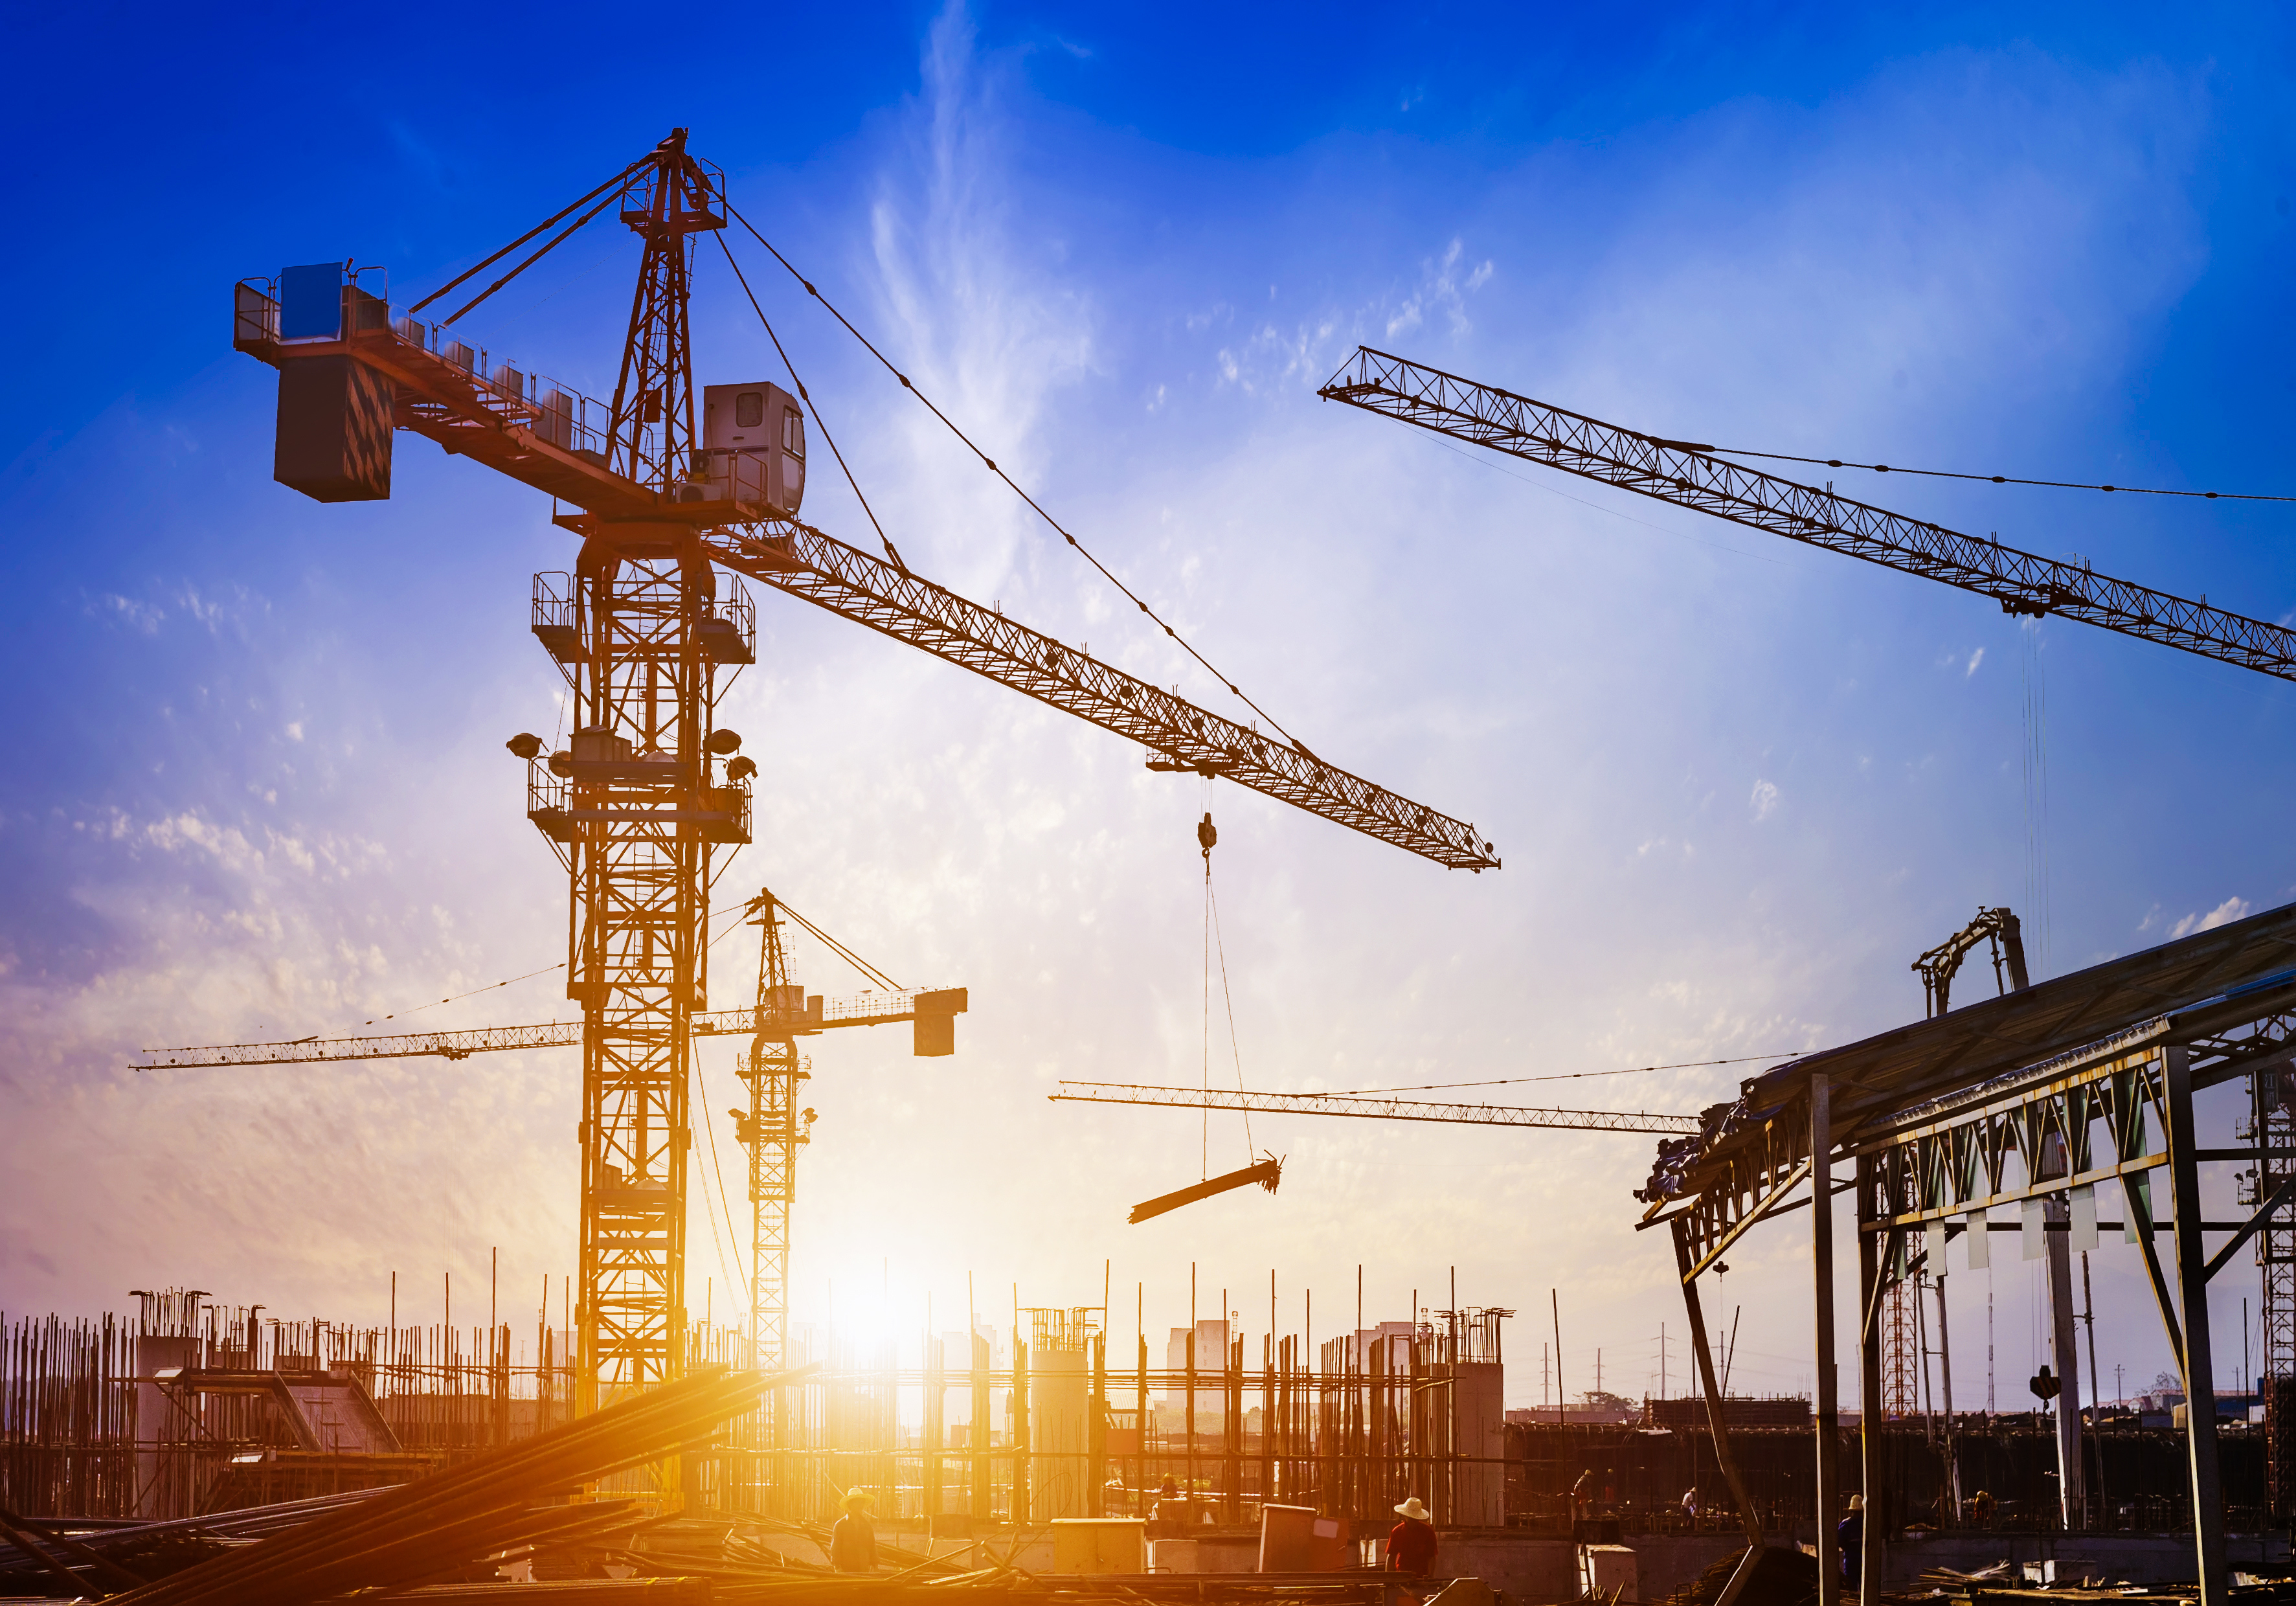 the construction industry in developing countries Construction industries in developing countries due to identified challenges and unavailability of the clear understanding of best practices , are dithering whether to adopt this technology.